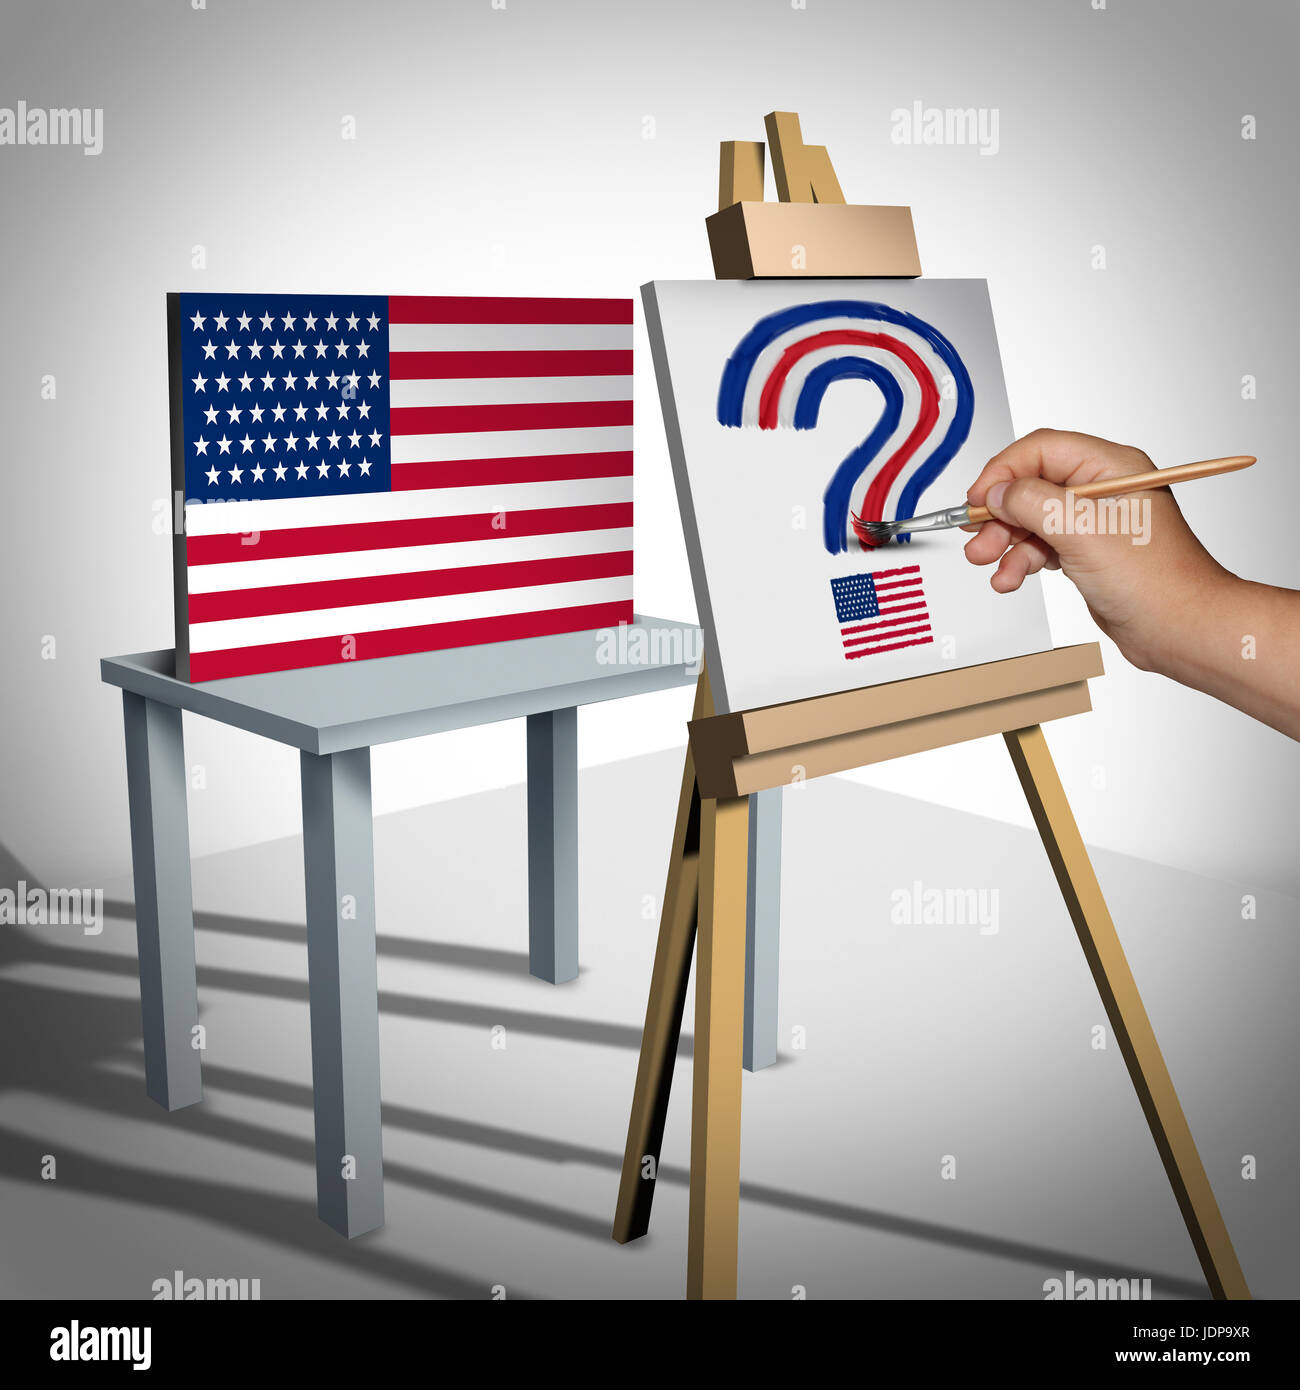 United States questions or national arts funding and white house political issues or Washington legislation uncertainty - Stock Image